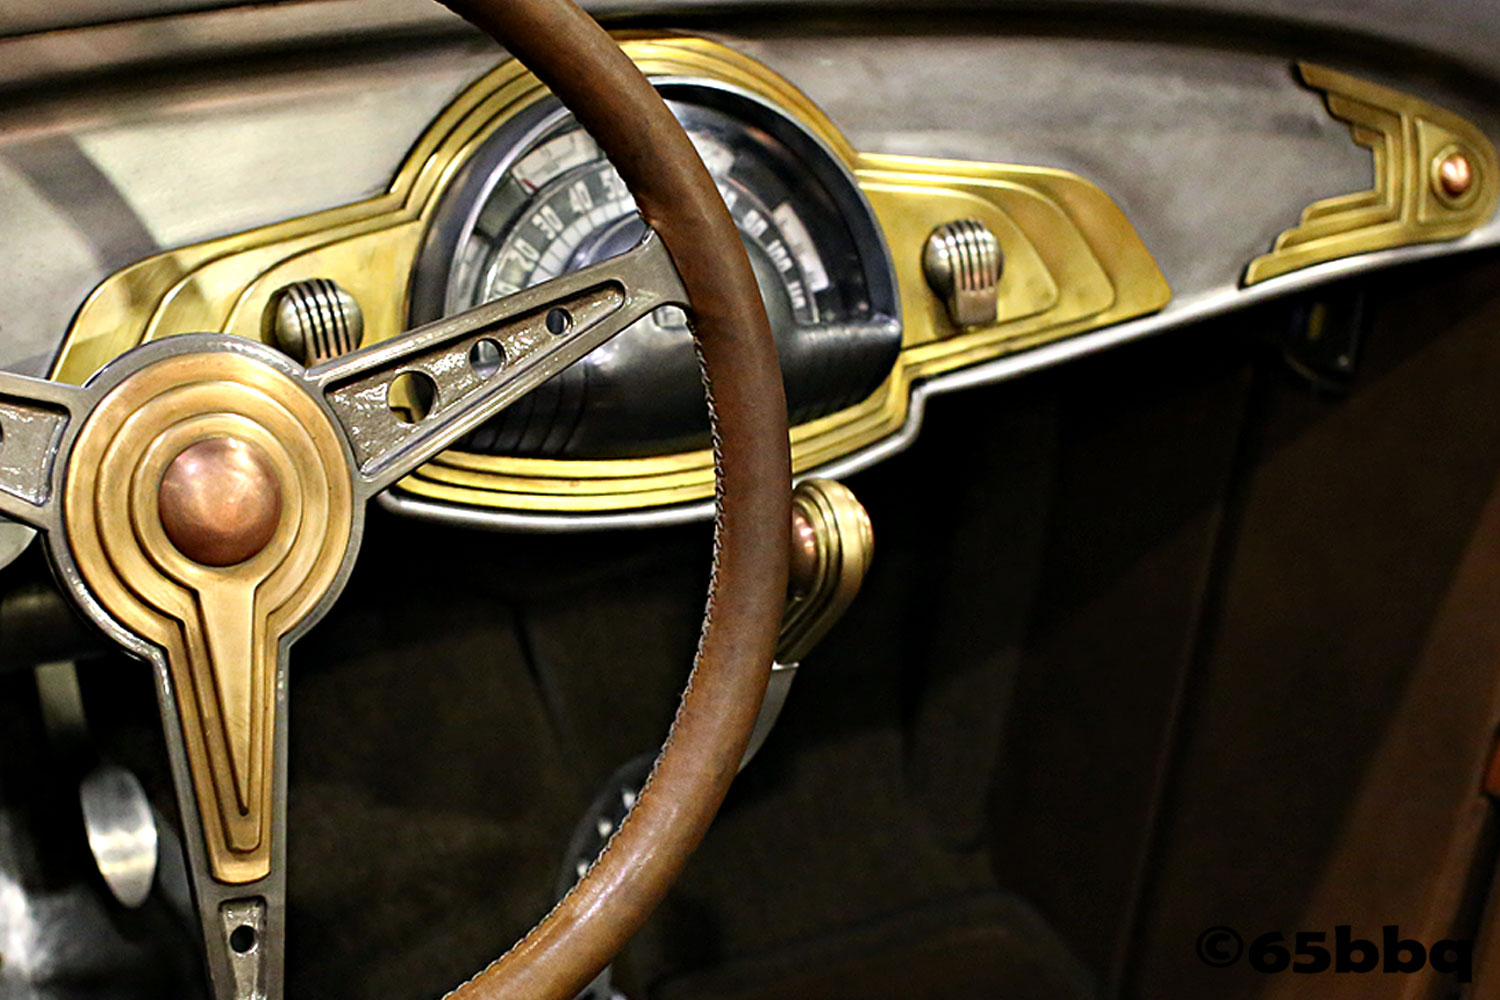 hollywood-hot-rod-classic-notes-65bbq-gold-and-silver.jpg